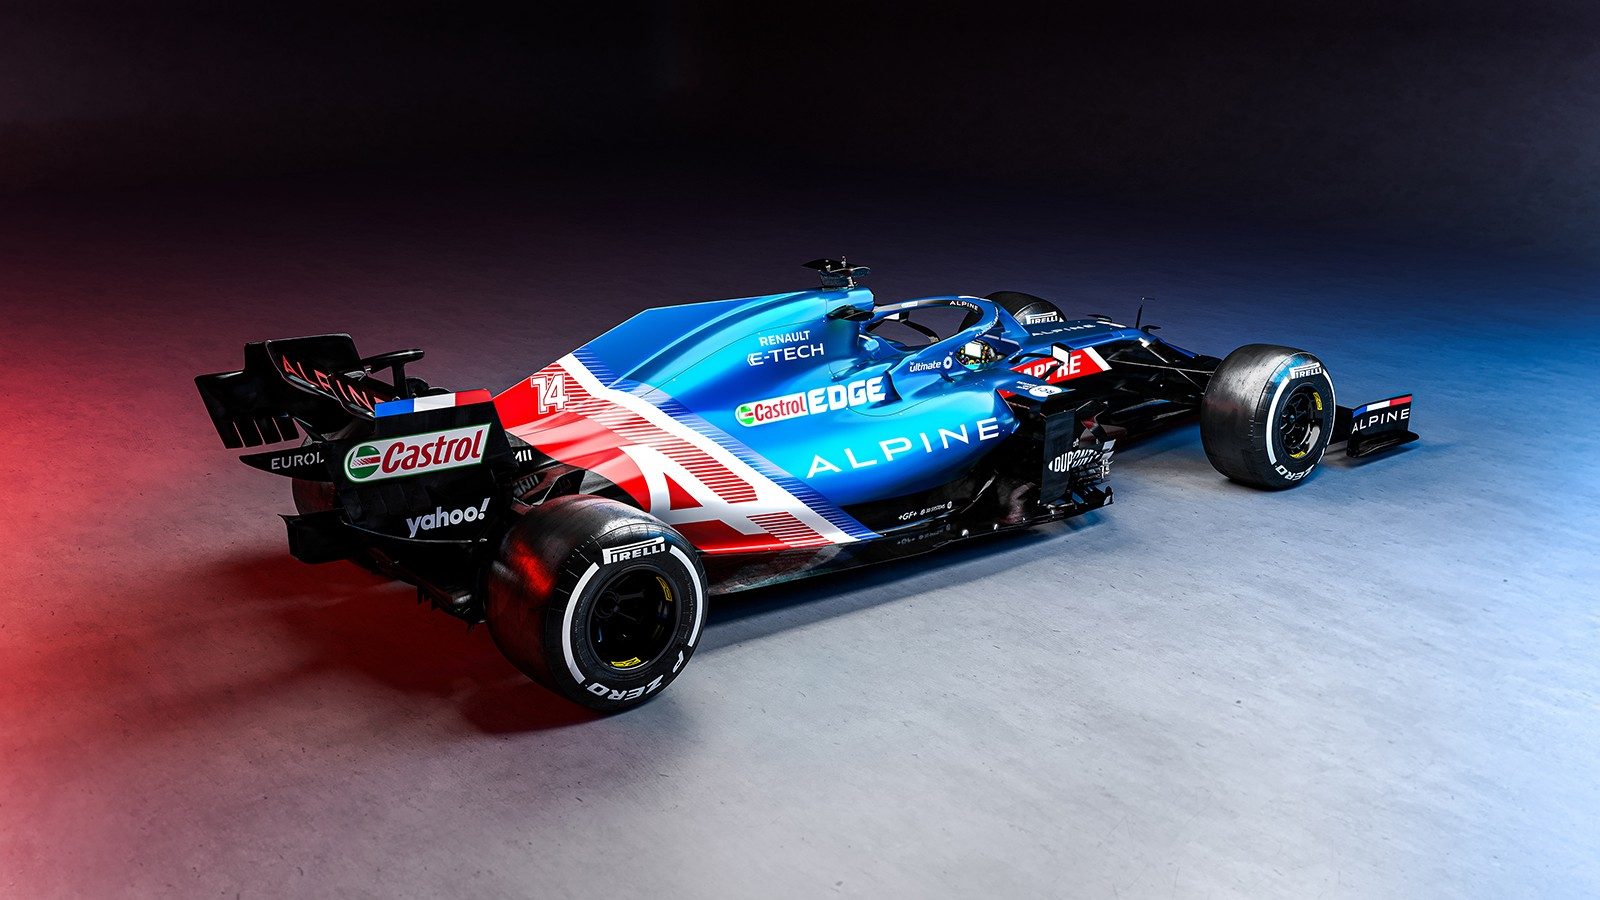 Mclaren team mates lando norris and carlos sainz kept their driver bromance bubbling at the launch of their new mcl35 formula one car on thursday. 2021 Alpine A521 F1 Car Launch Pictures